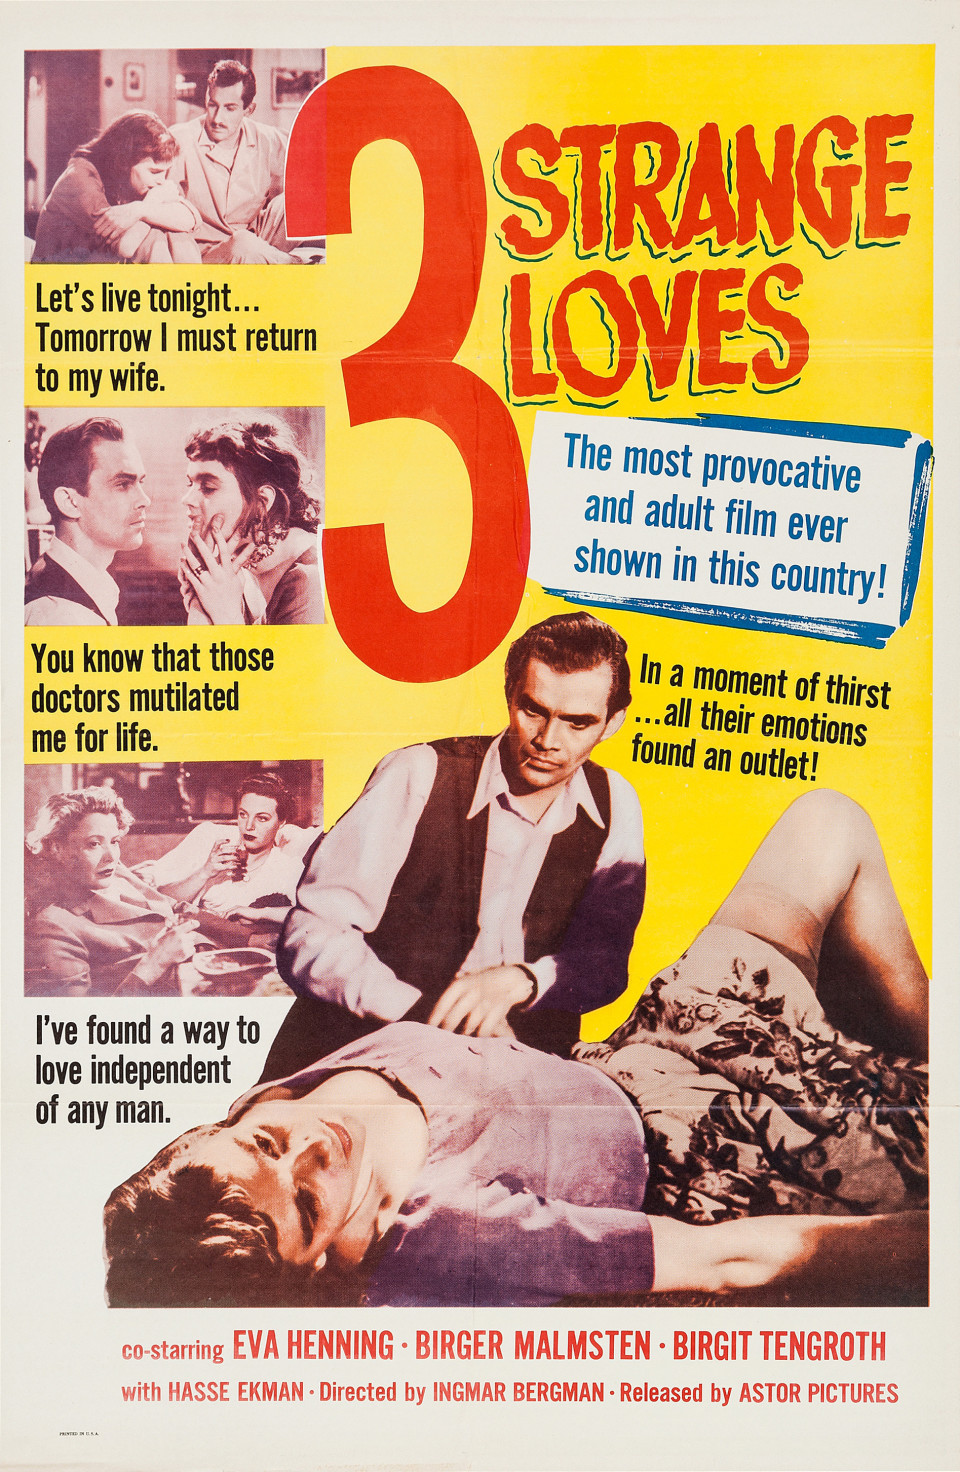 09-1959-3StrangeLoves-one sheet